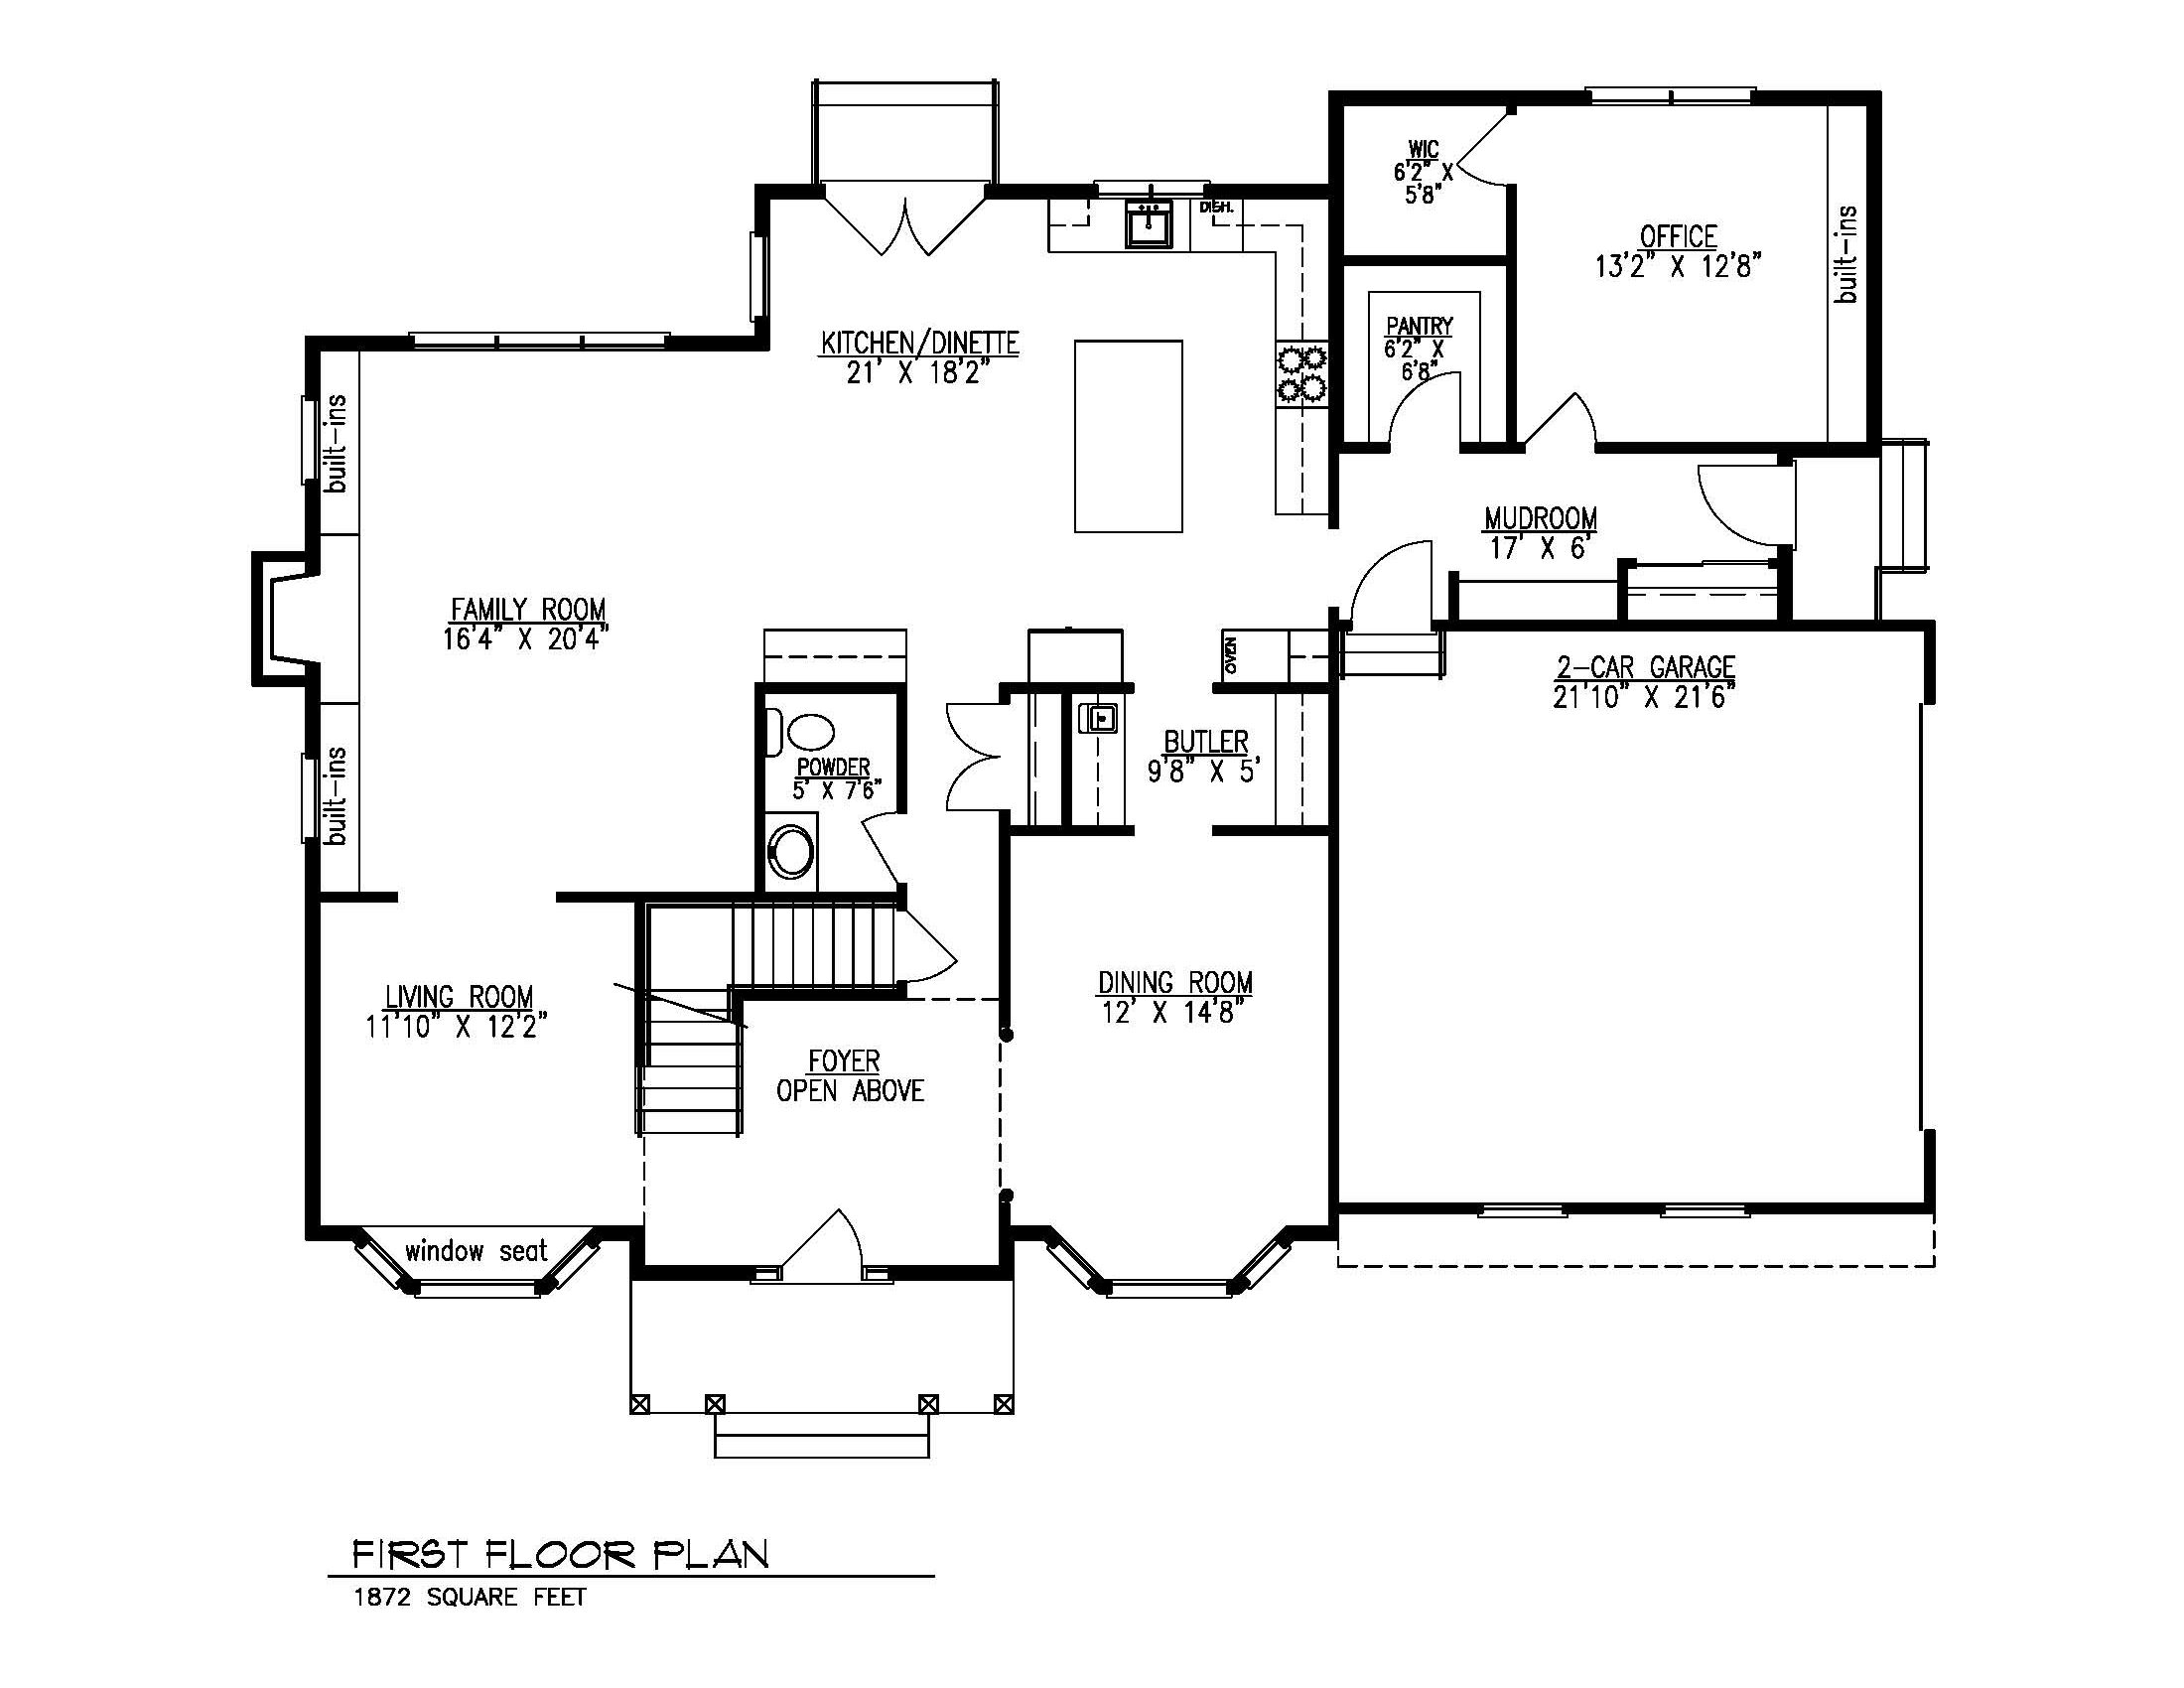 211 Golf Edge First Floor Plan